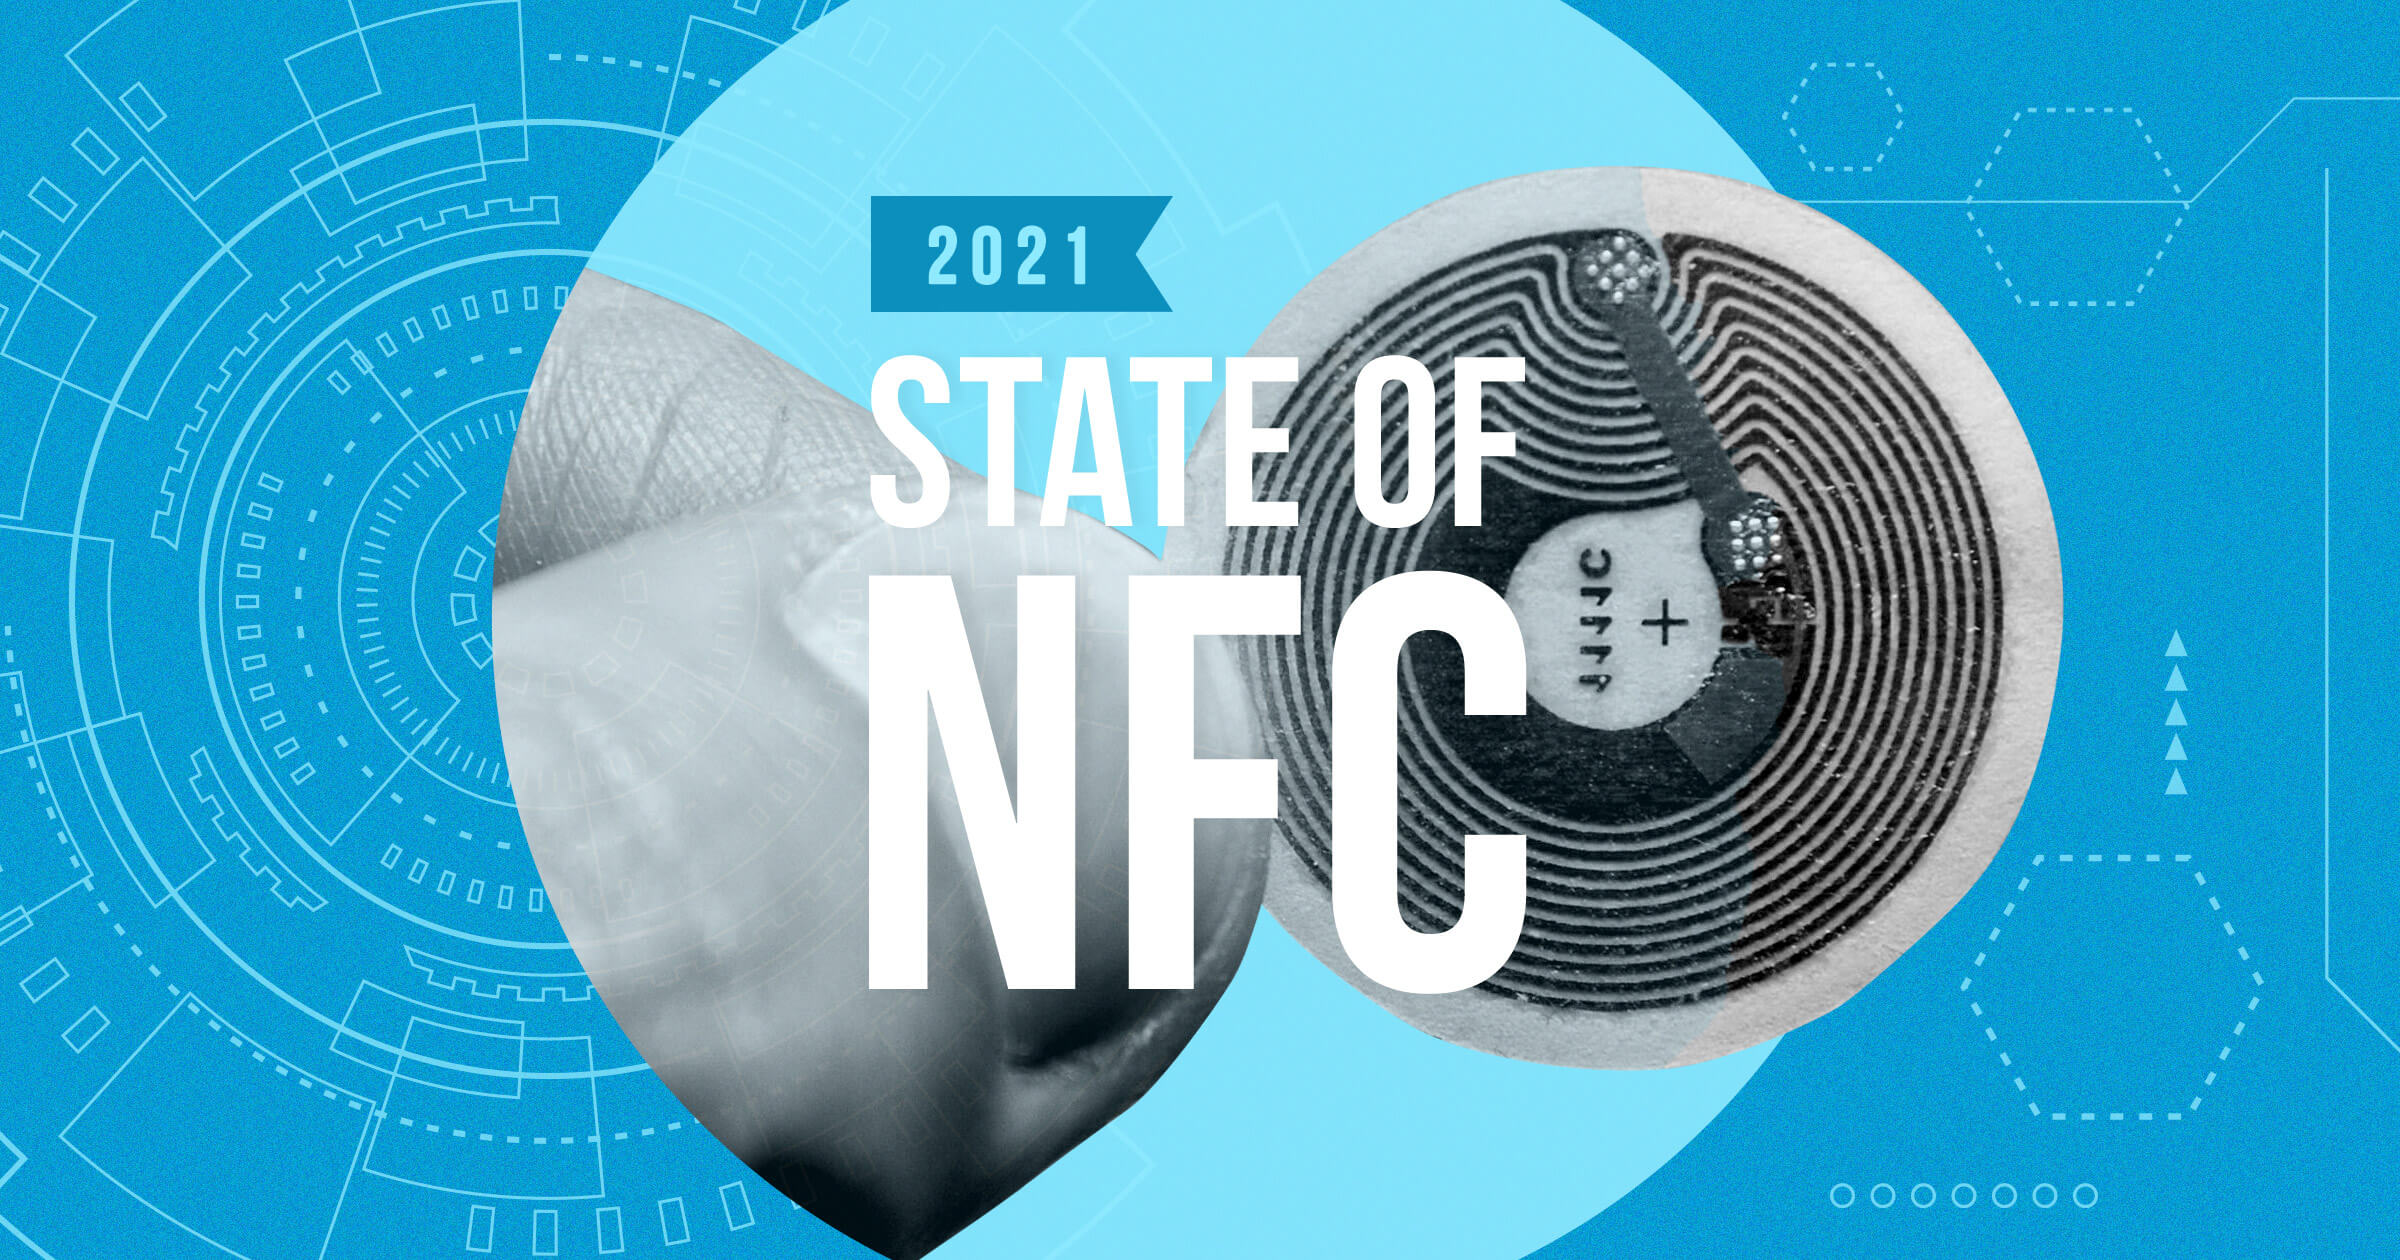 The State of NFC in 2021